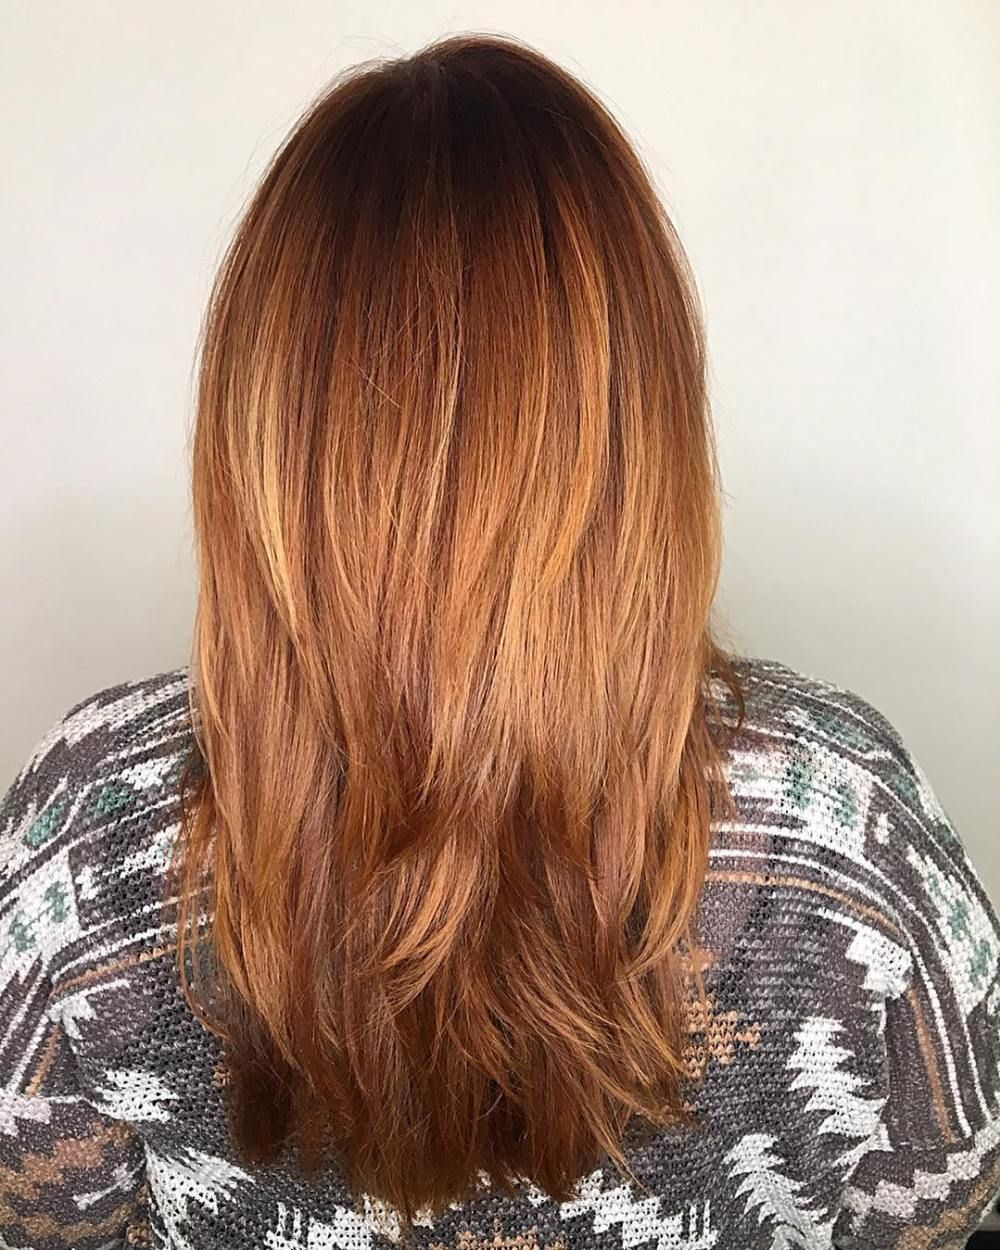 Auburn Hair Colors to Emphasize Your Individuality Straight red